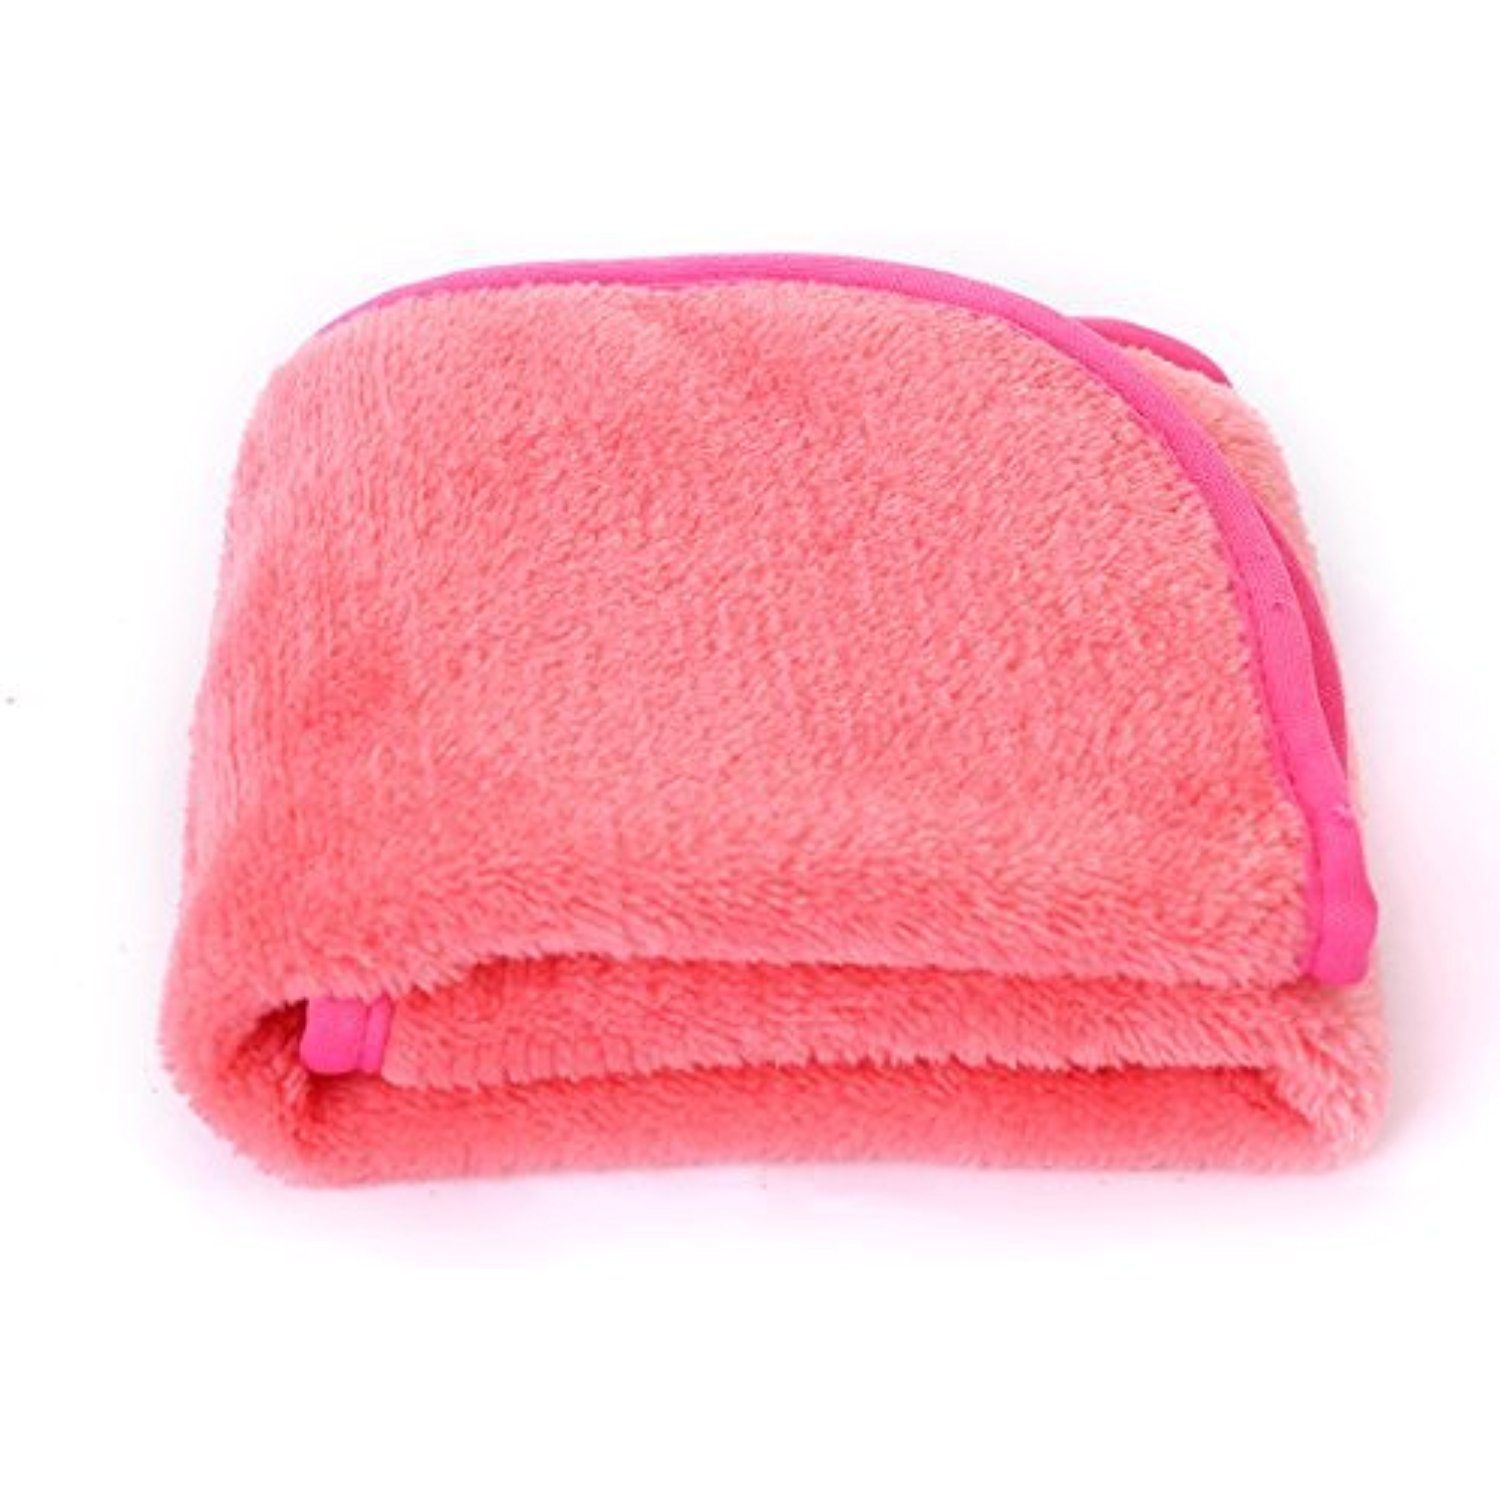 Makeup Remover Cloth (2 pack Pink) Chemical Free